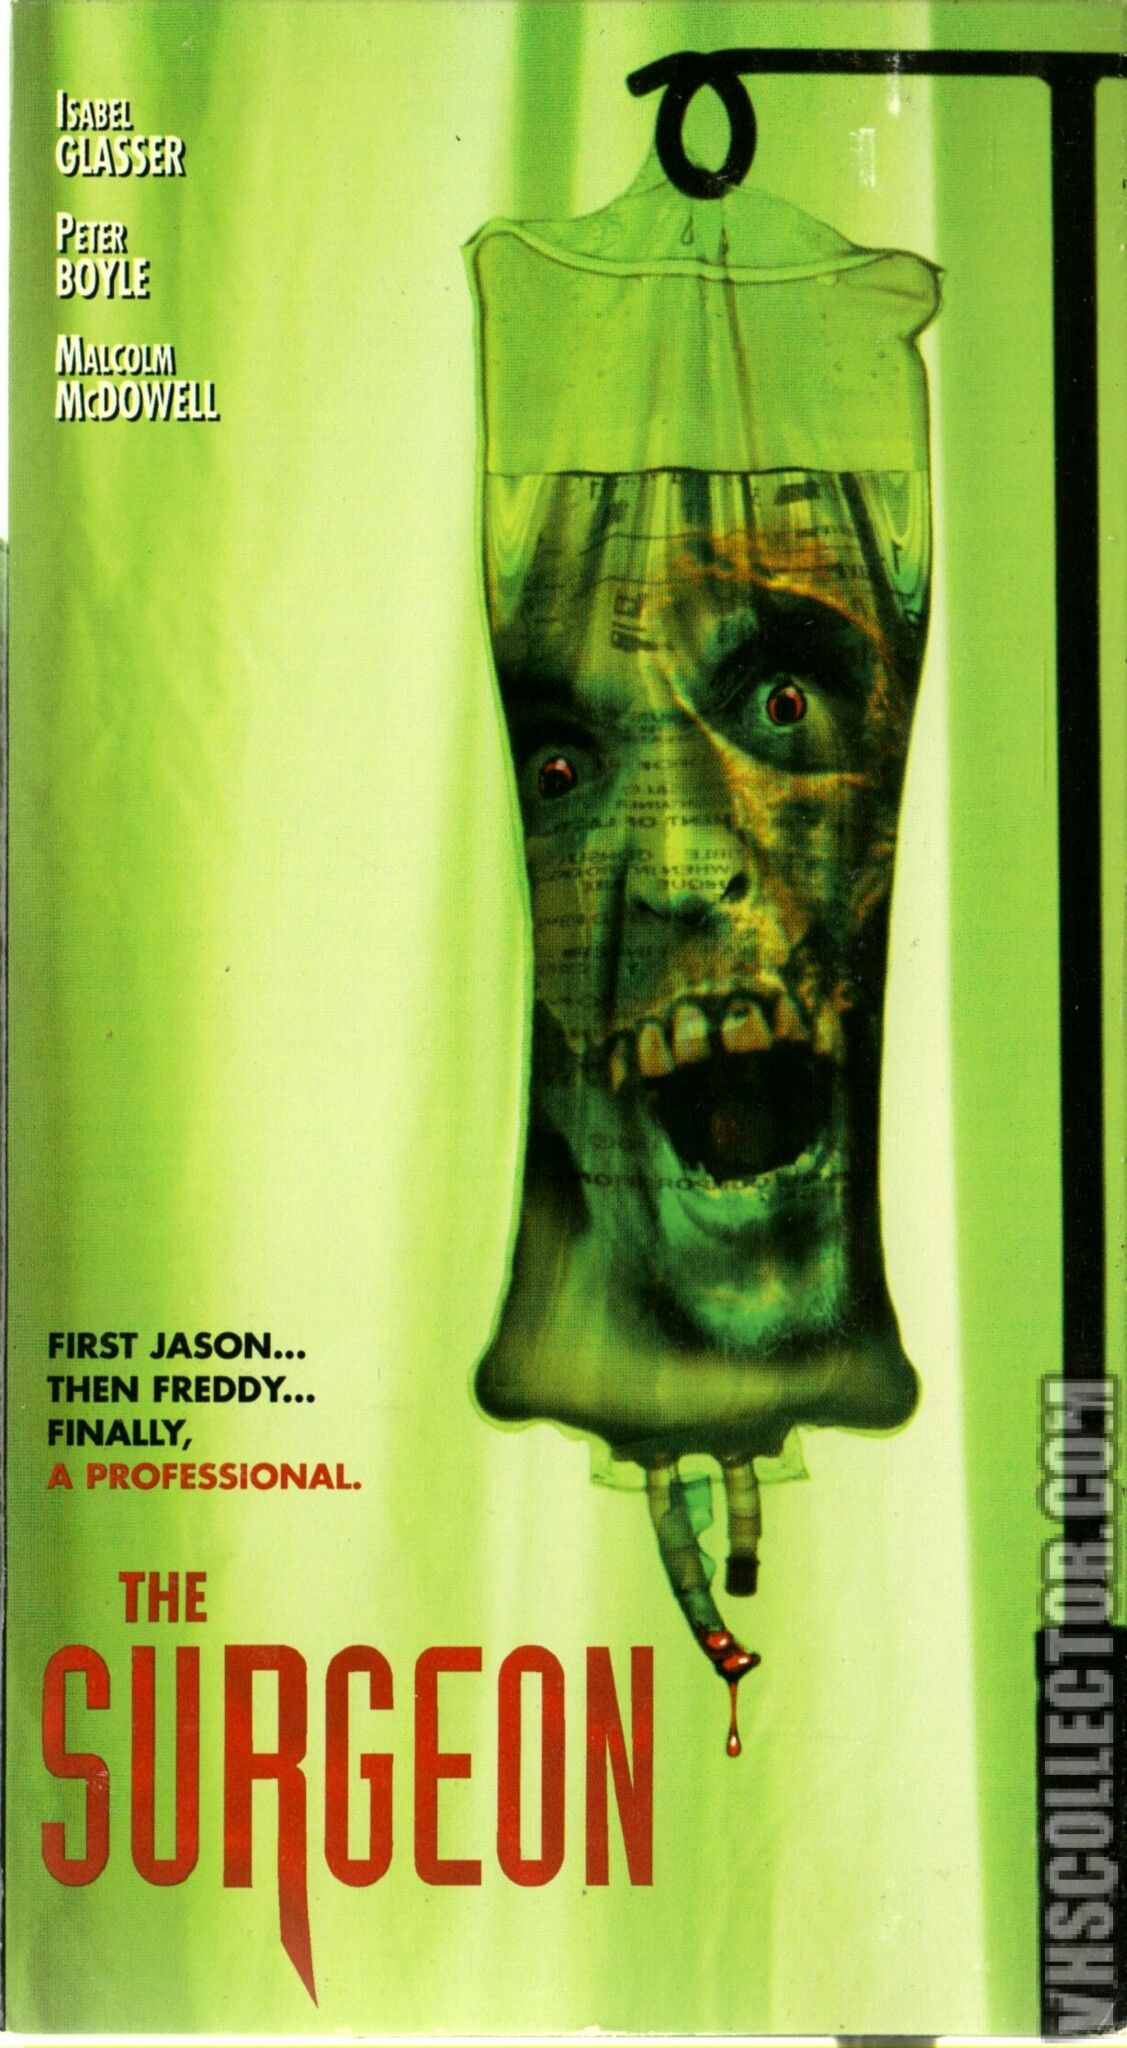 The Surgeon (1995) Scary movies, Horror movie posters